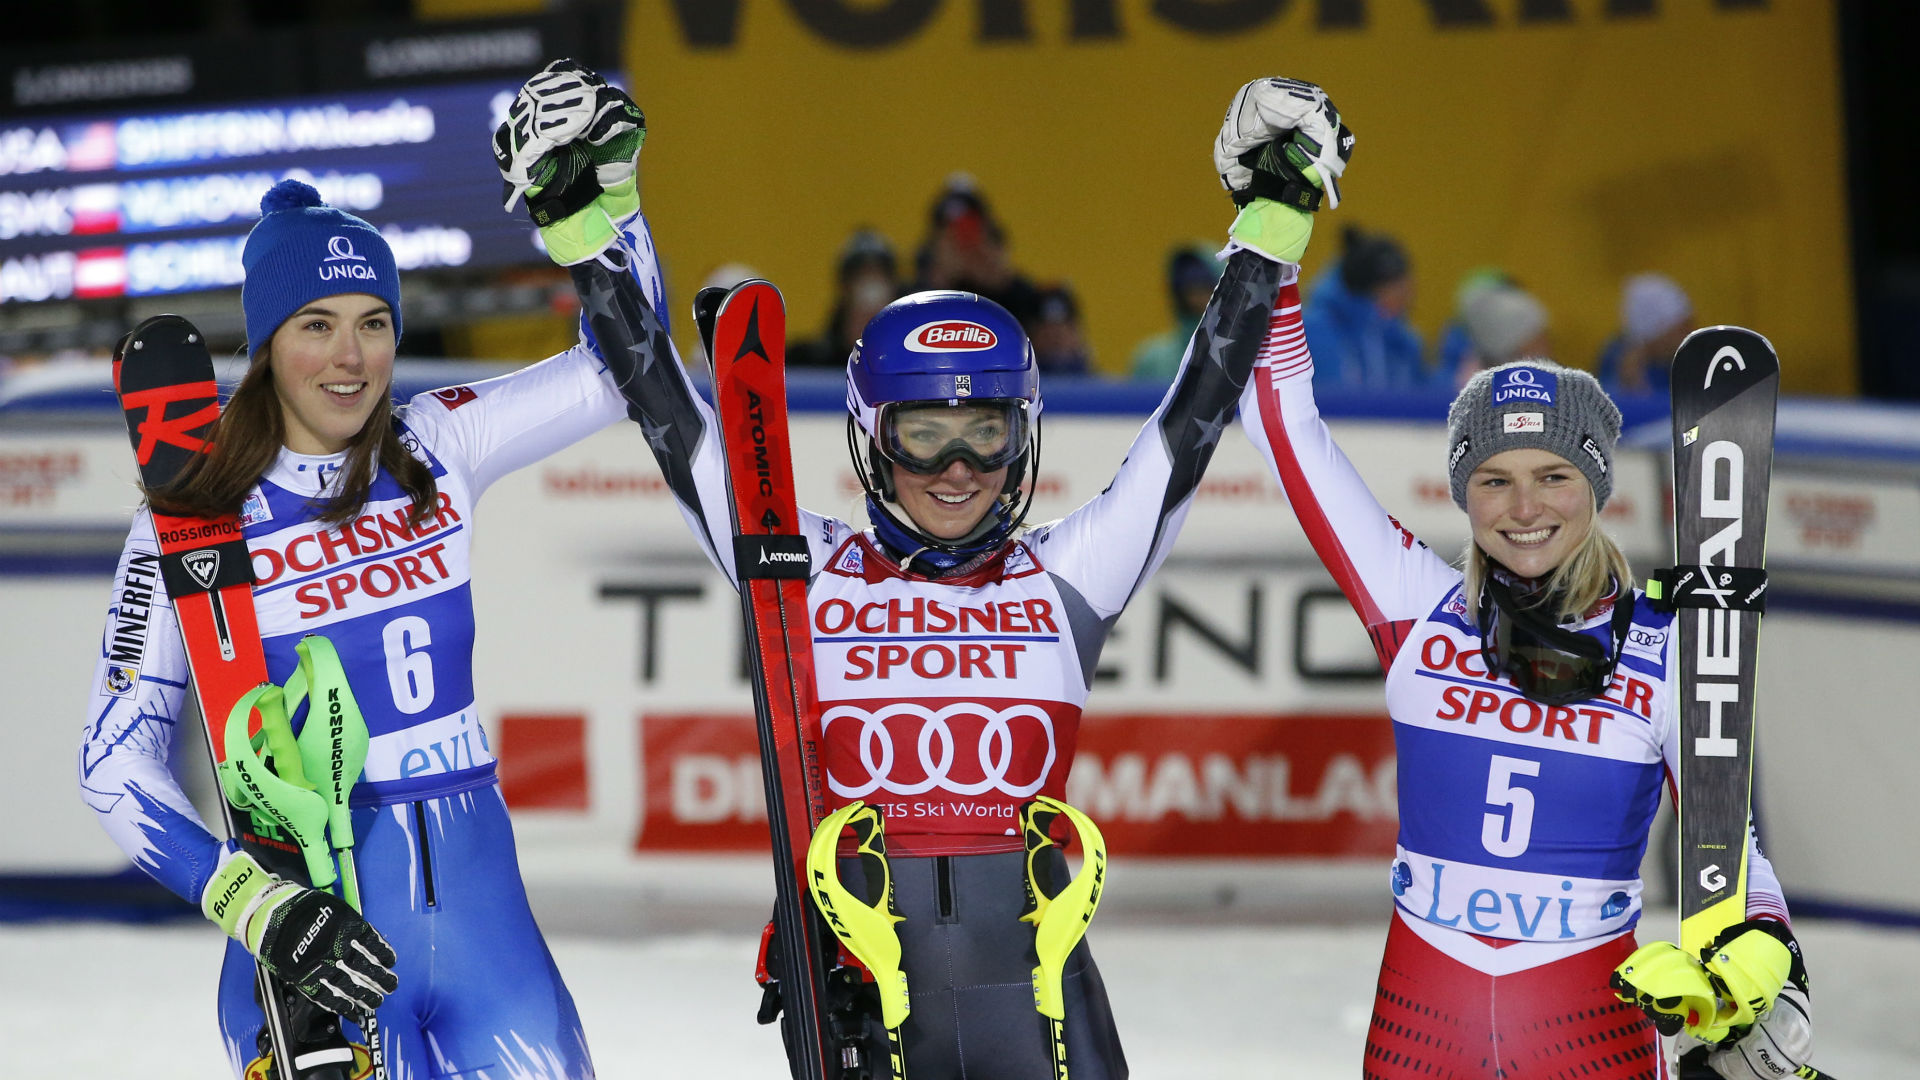 Slalom superstar Mikaela Shiffrin claimed a record-equalling third victory in Levi as she closes in on Marlies Schild's record.